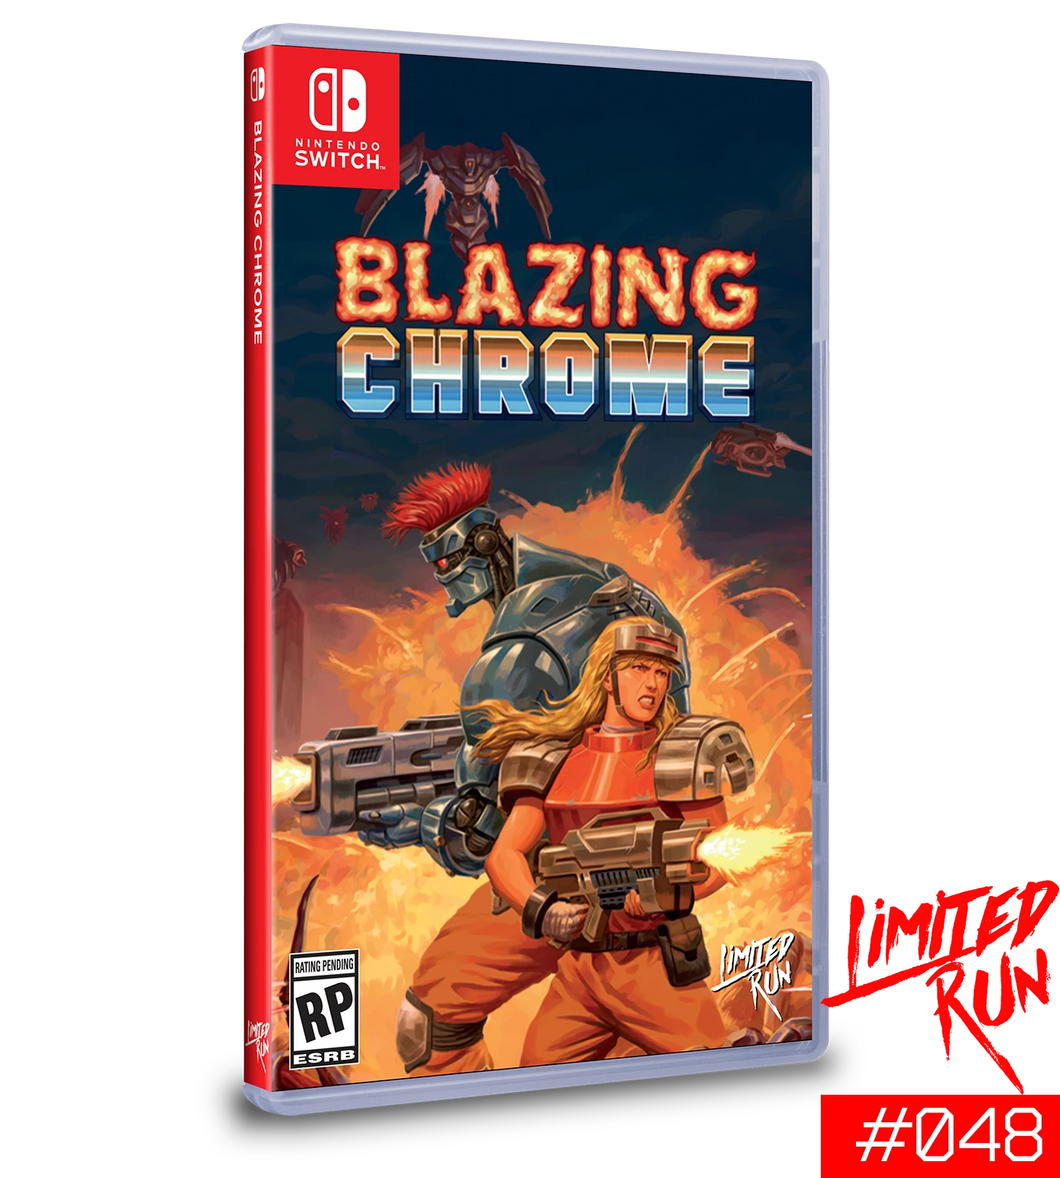 Blazing Chrome (Limited Run) (Nintendo Switch)